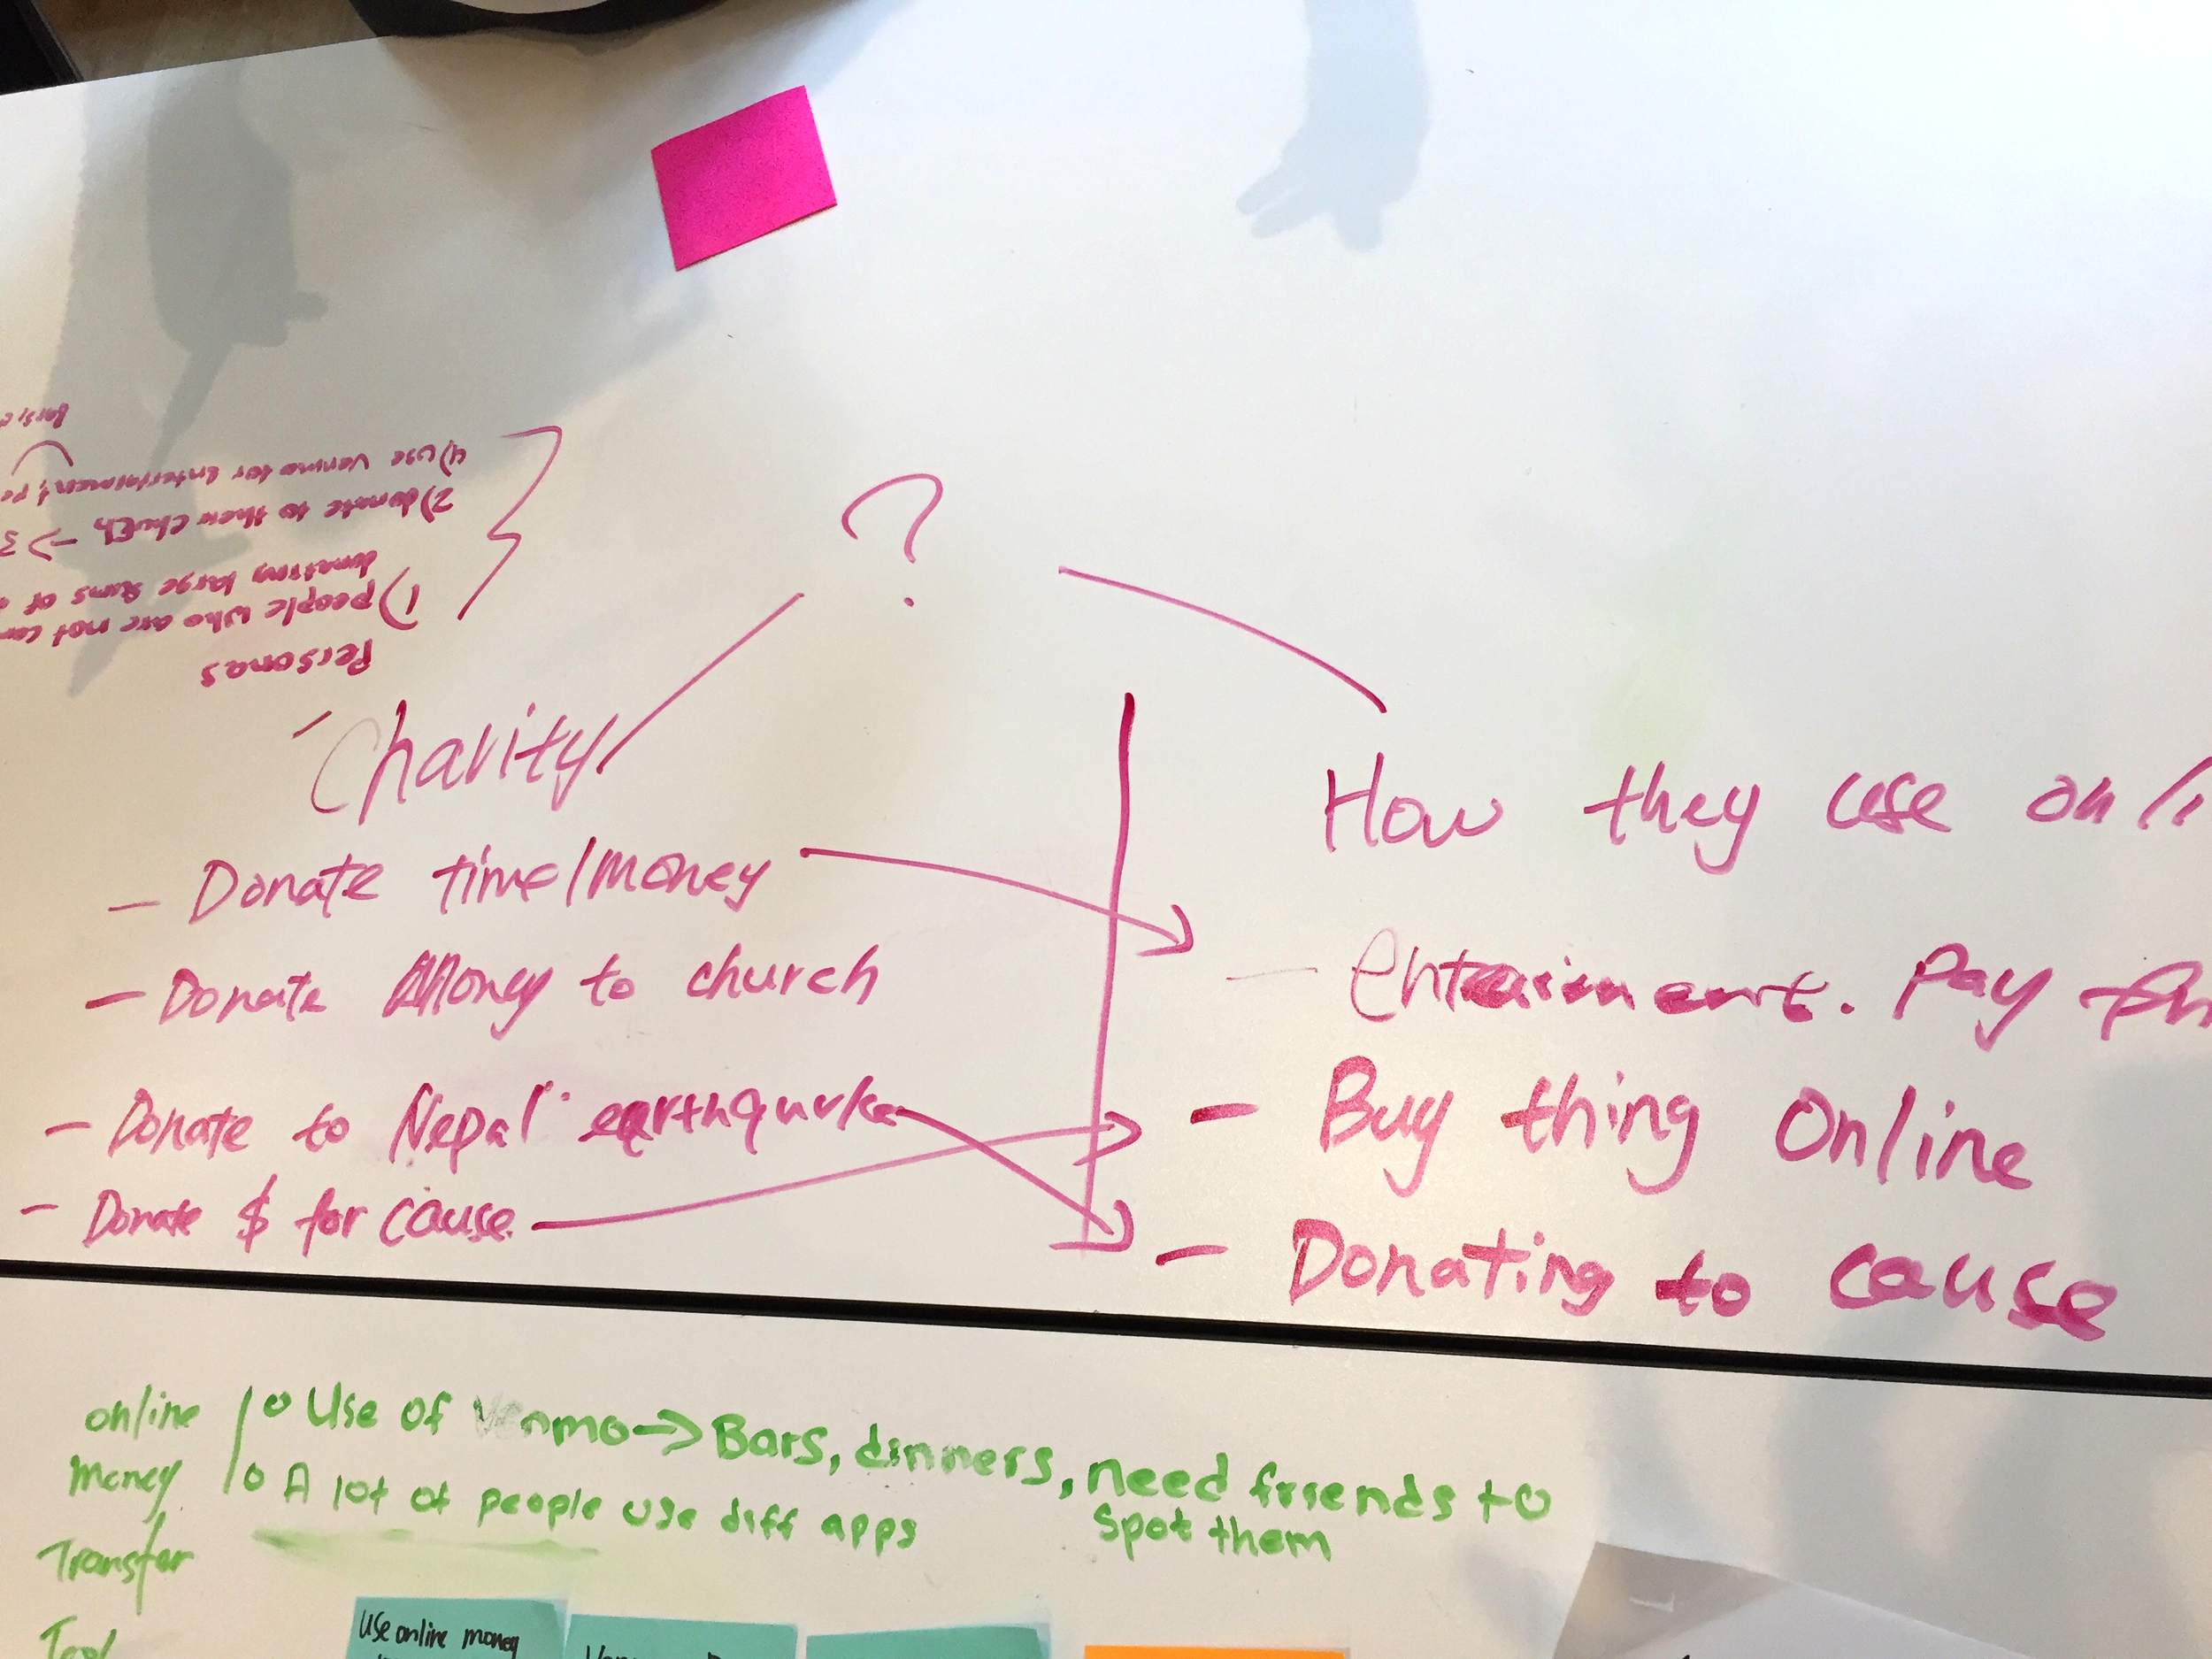 Explored many potential opportunities in user research